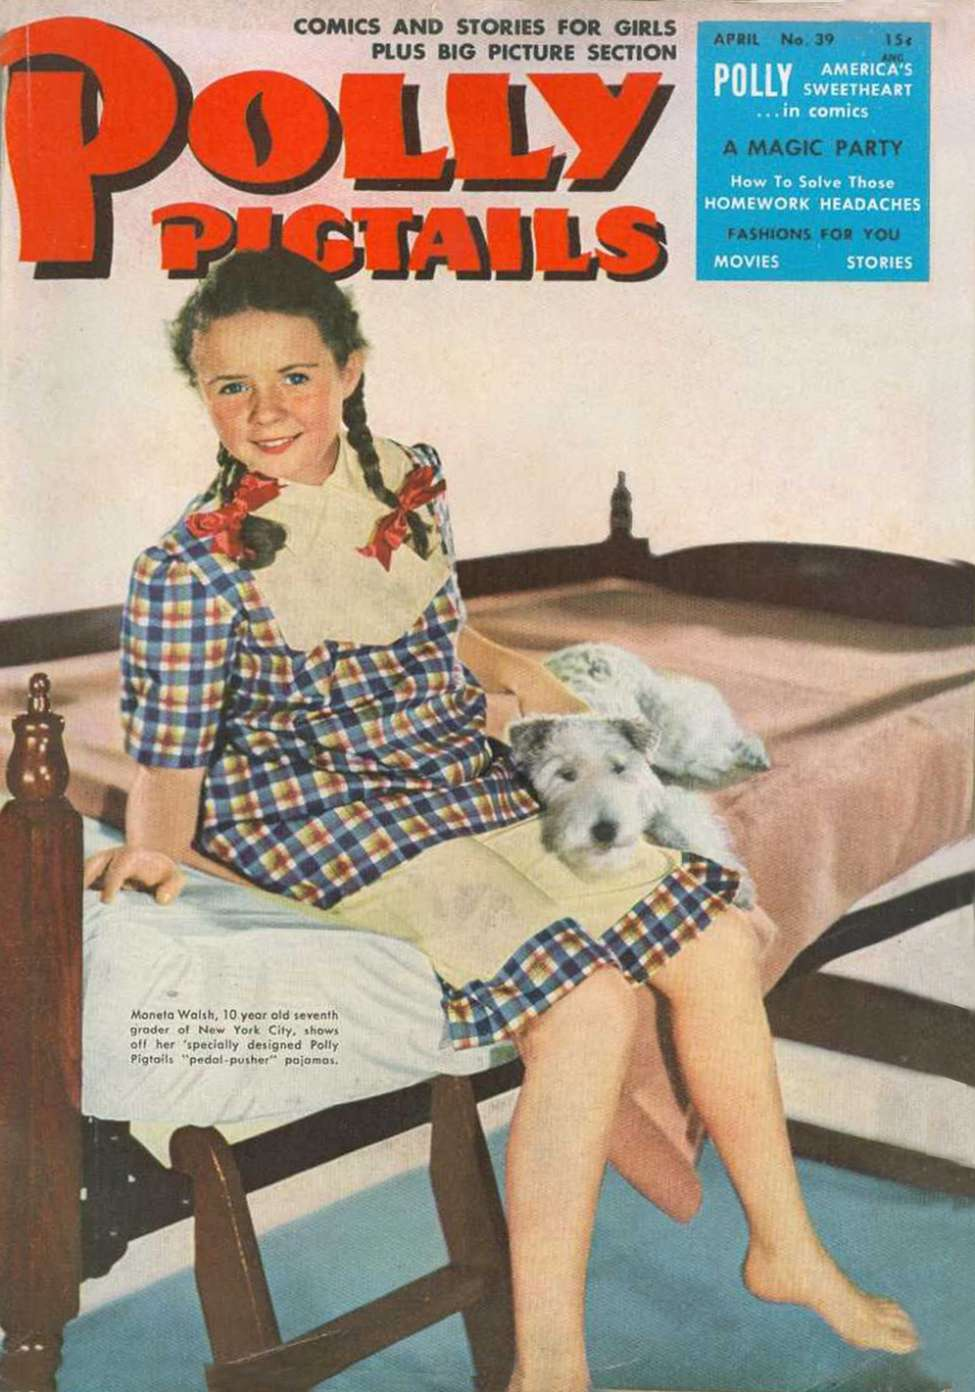 Comic Book Cover For Polly Pigtails #39